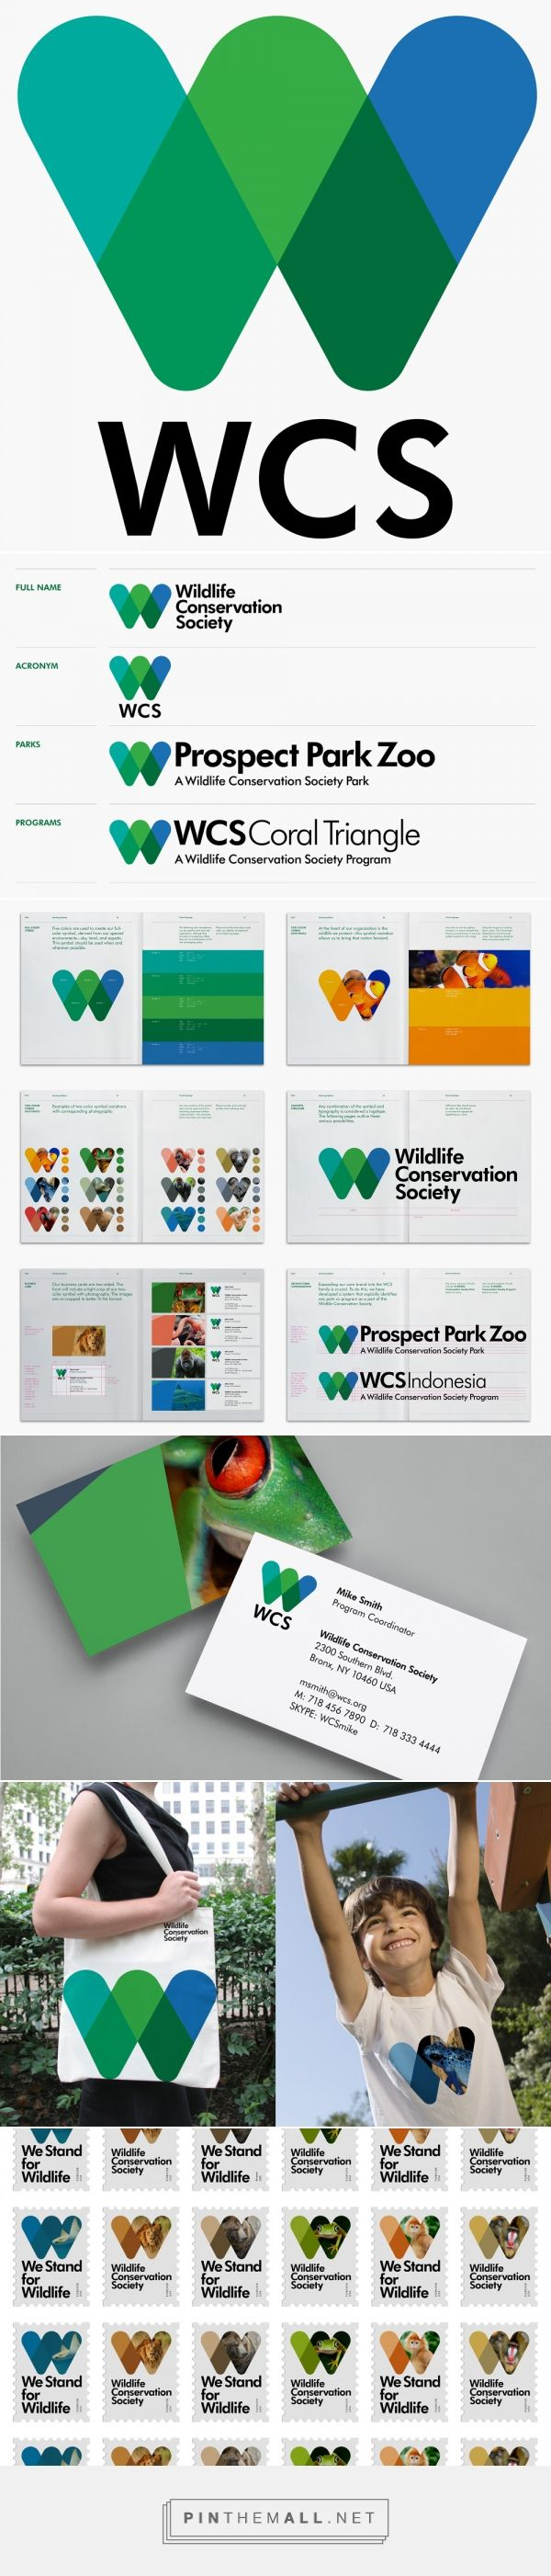 Brand New: New Logo and Identity for Wildlife Conservation Society by Pentagram - created via http://pinthemall.net